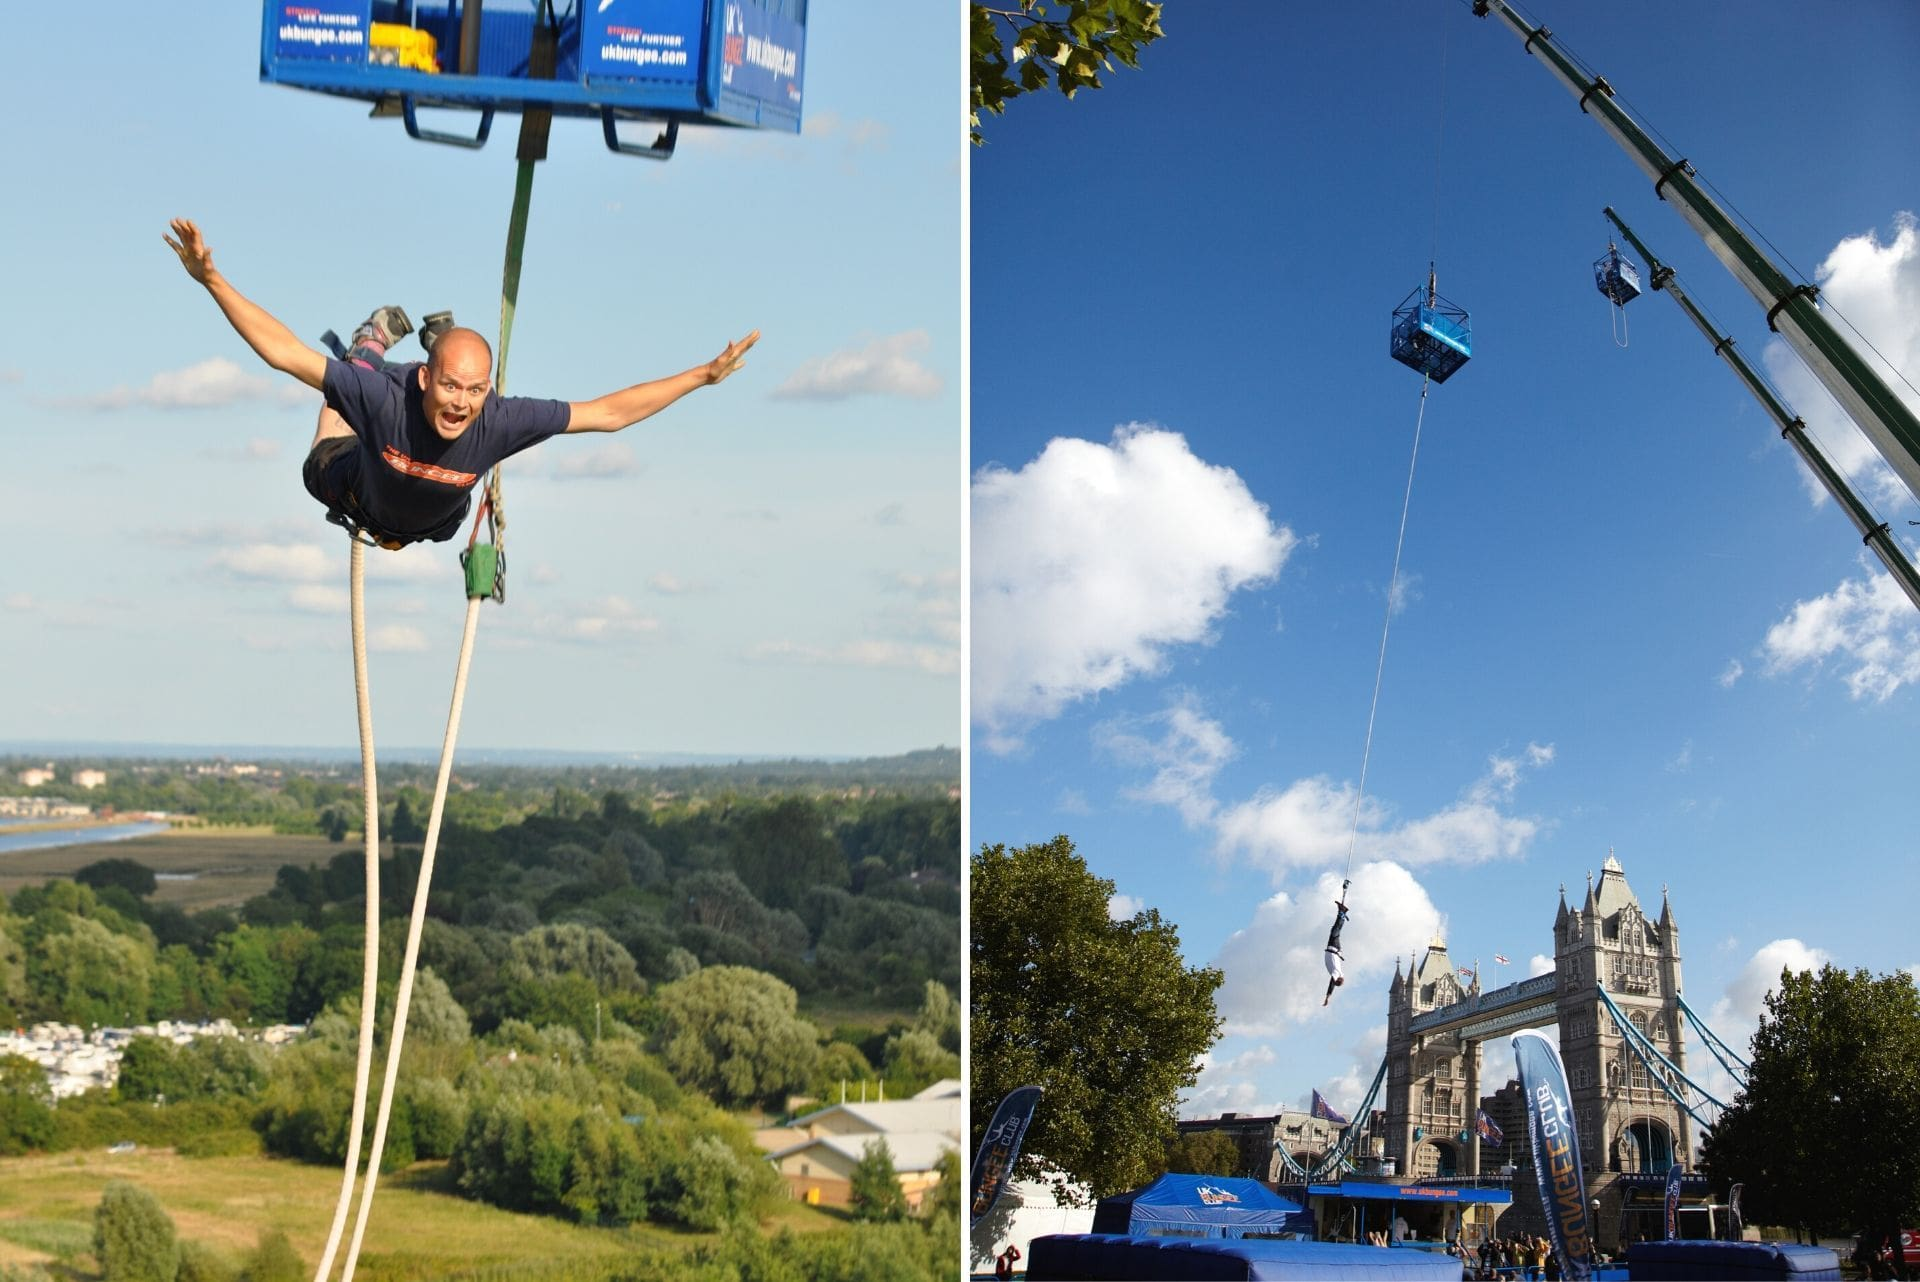 bungee-jumping-uk-england-countryside-and-london-bridge